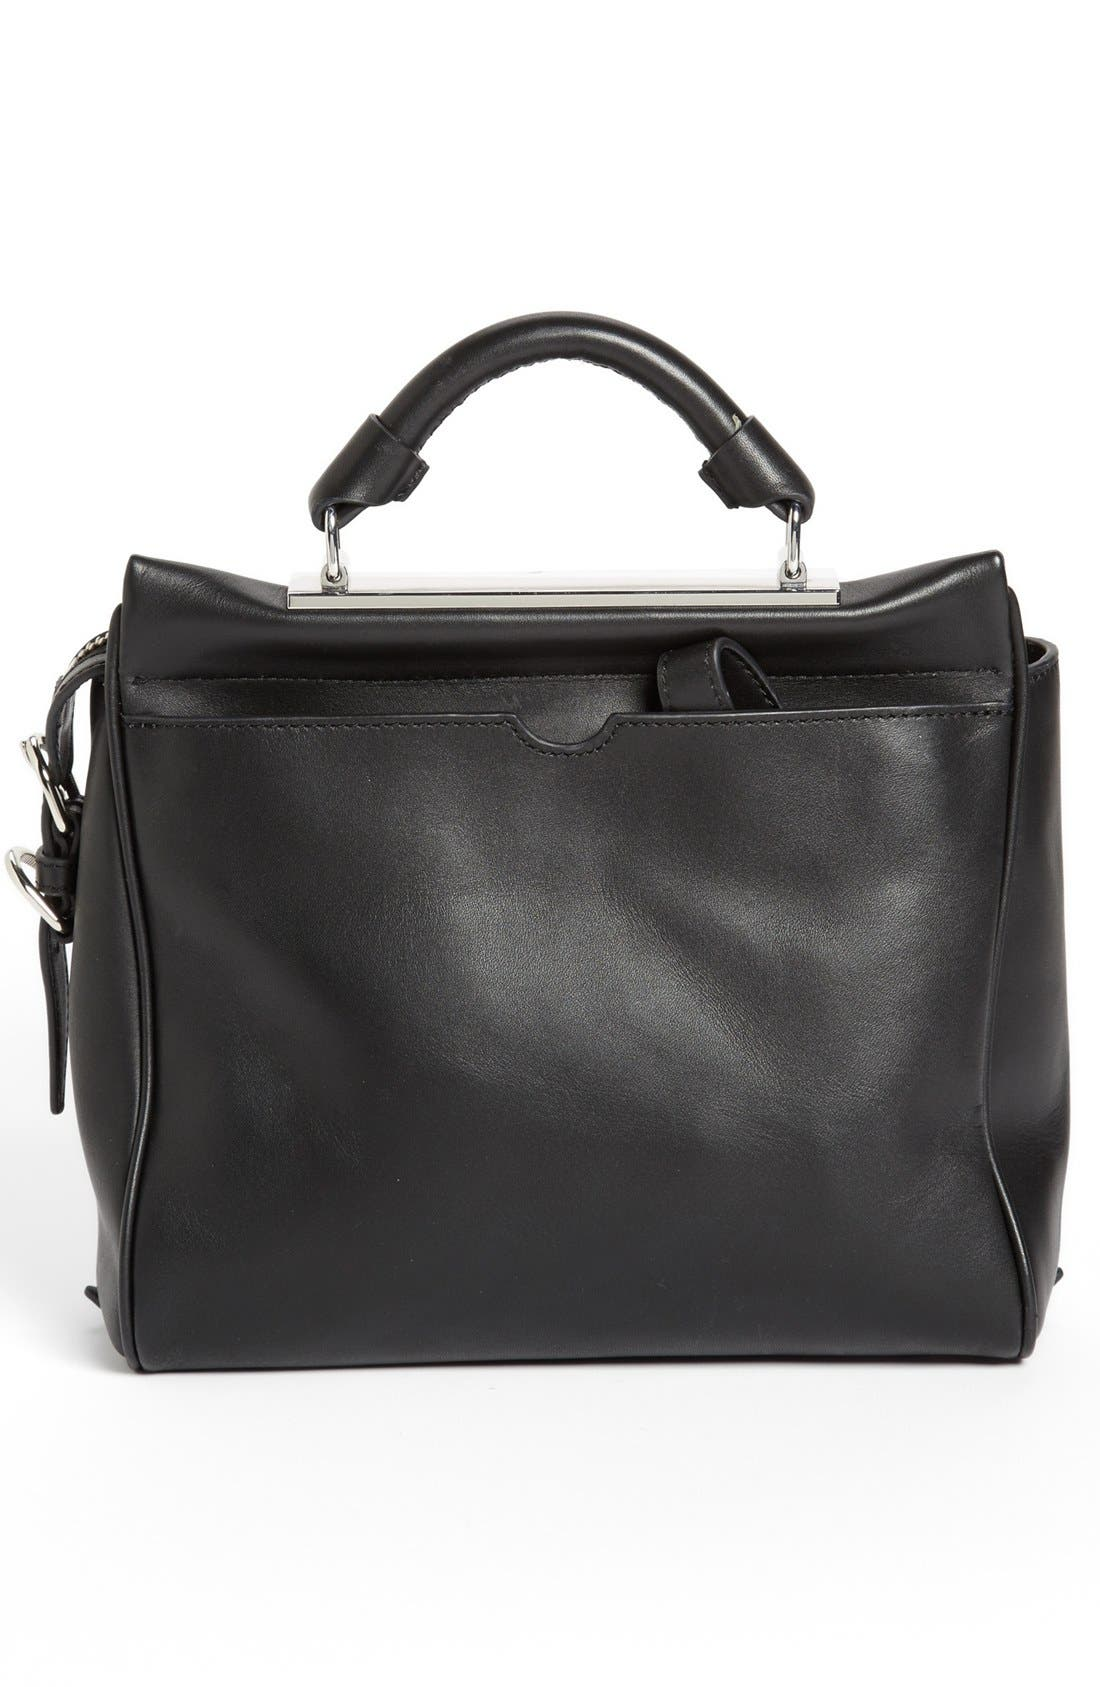 Alternate Image 3  - 3.1 Phillip Lim 'Small Ryder' Satchel